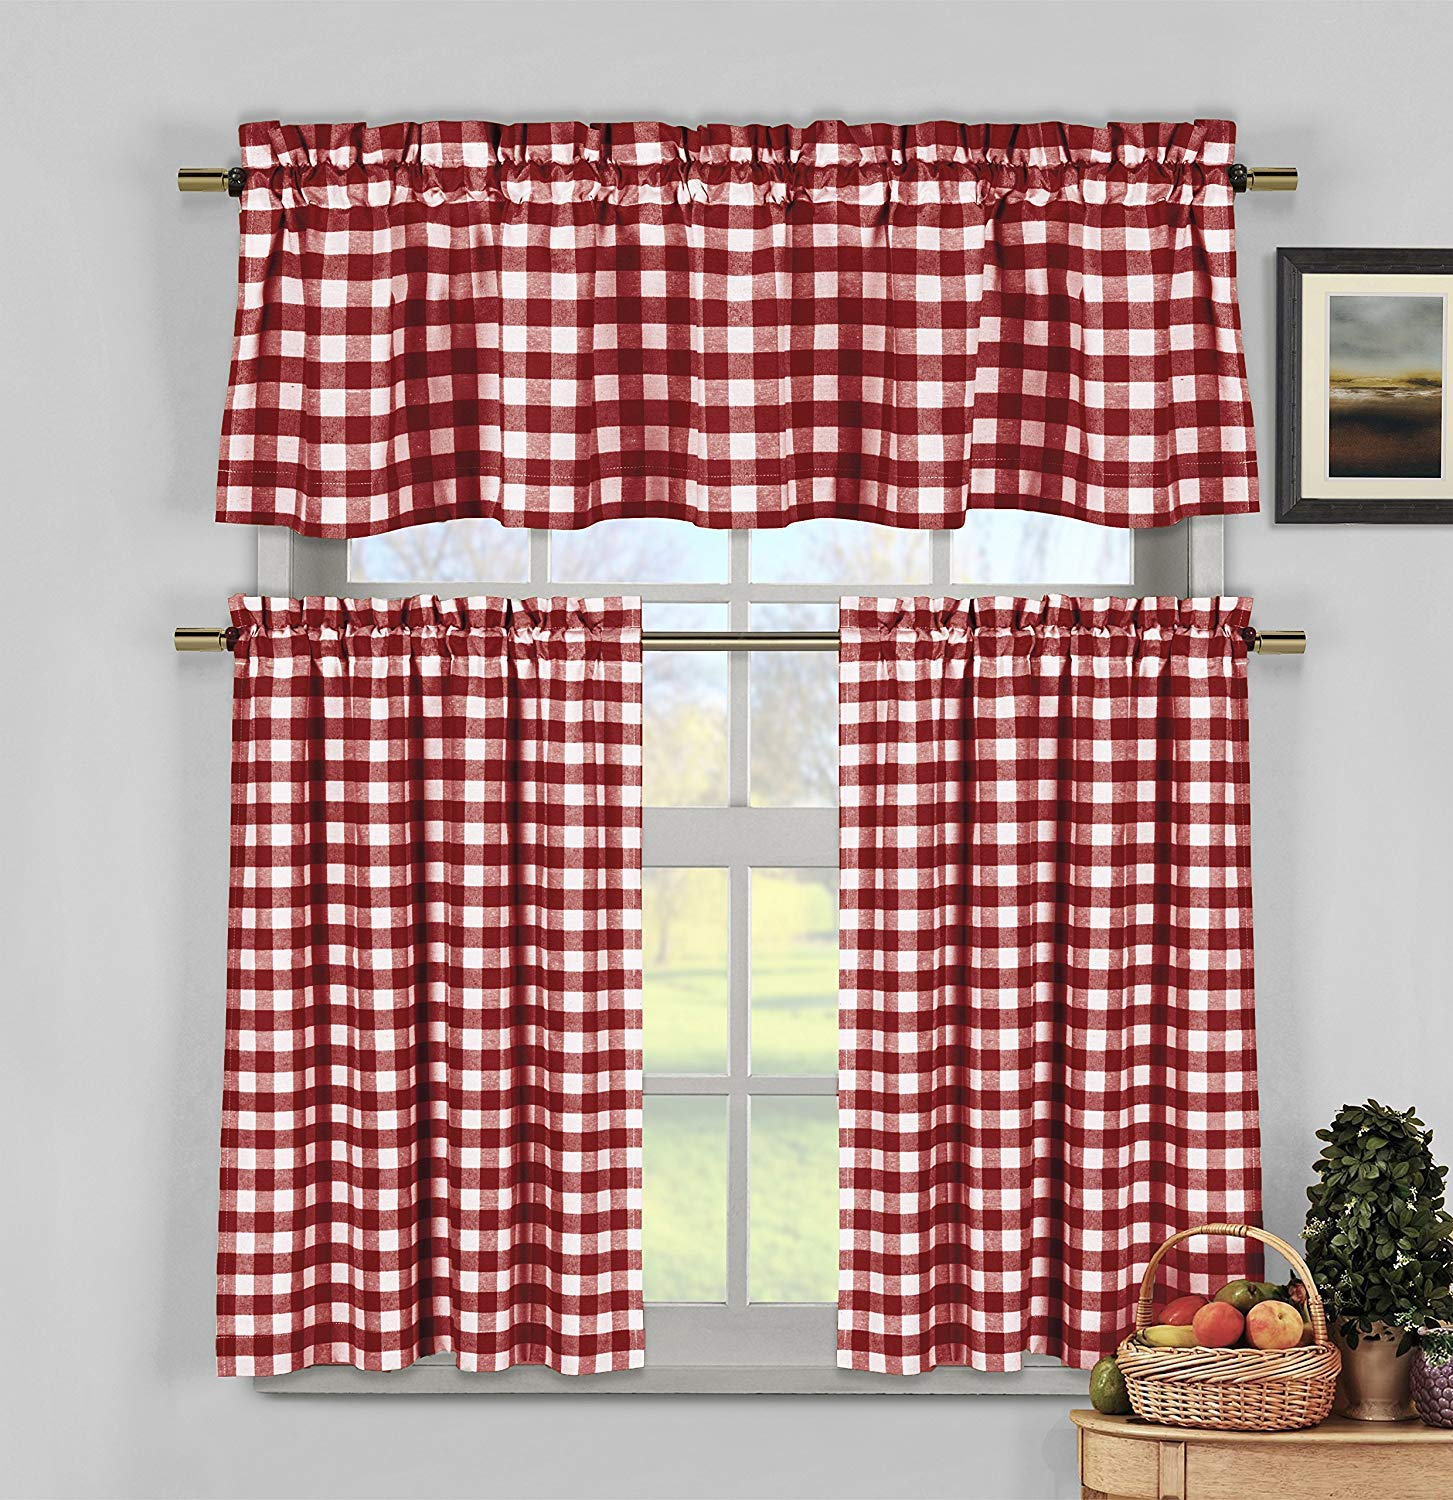 3 Piece Plaid, Checkered, Gingham 35% Cotton Kitchen Curtain Set with 1 Valance and 2 Tier Panels (Burgundy) plus a free wooden hanger